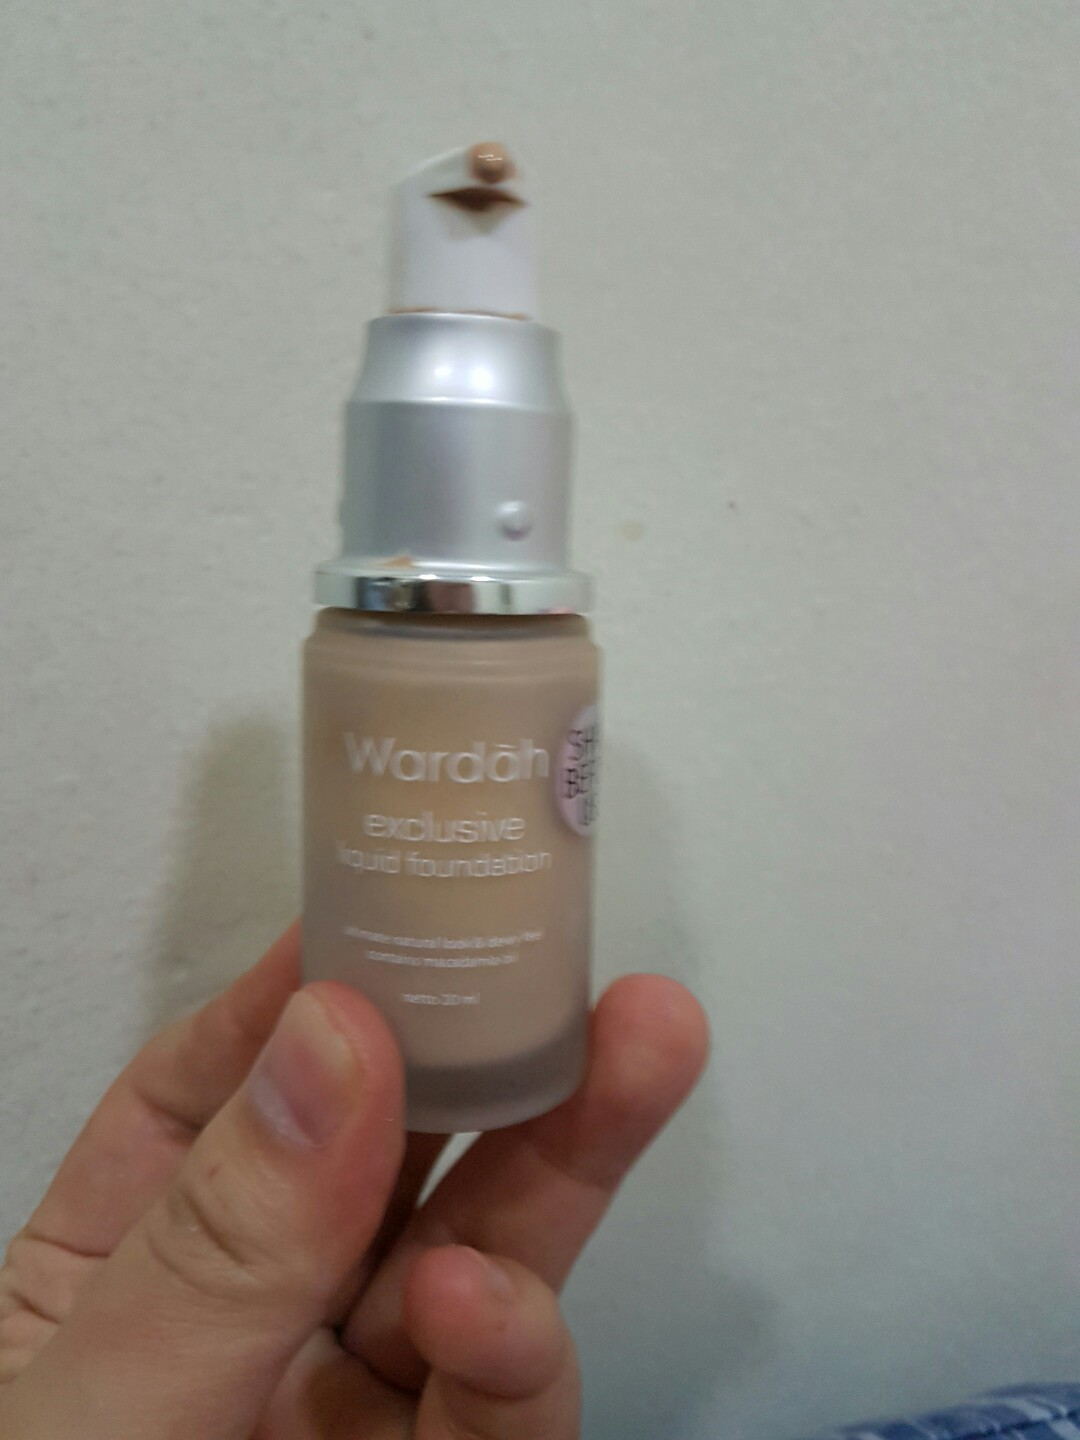 Wardah Exclusive Liquid Foundation 01 Light Beige 20 Ml Daftar Free Gift 20ml